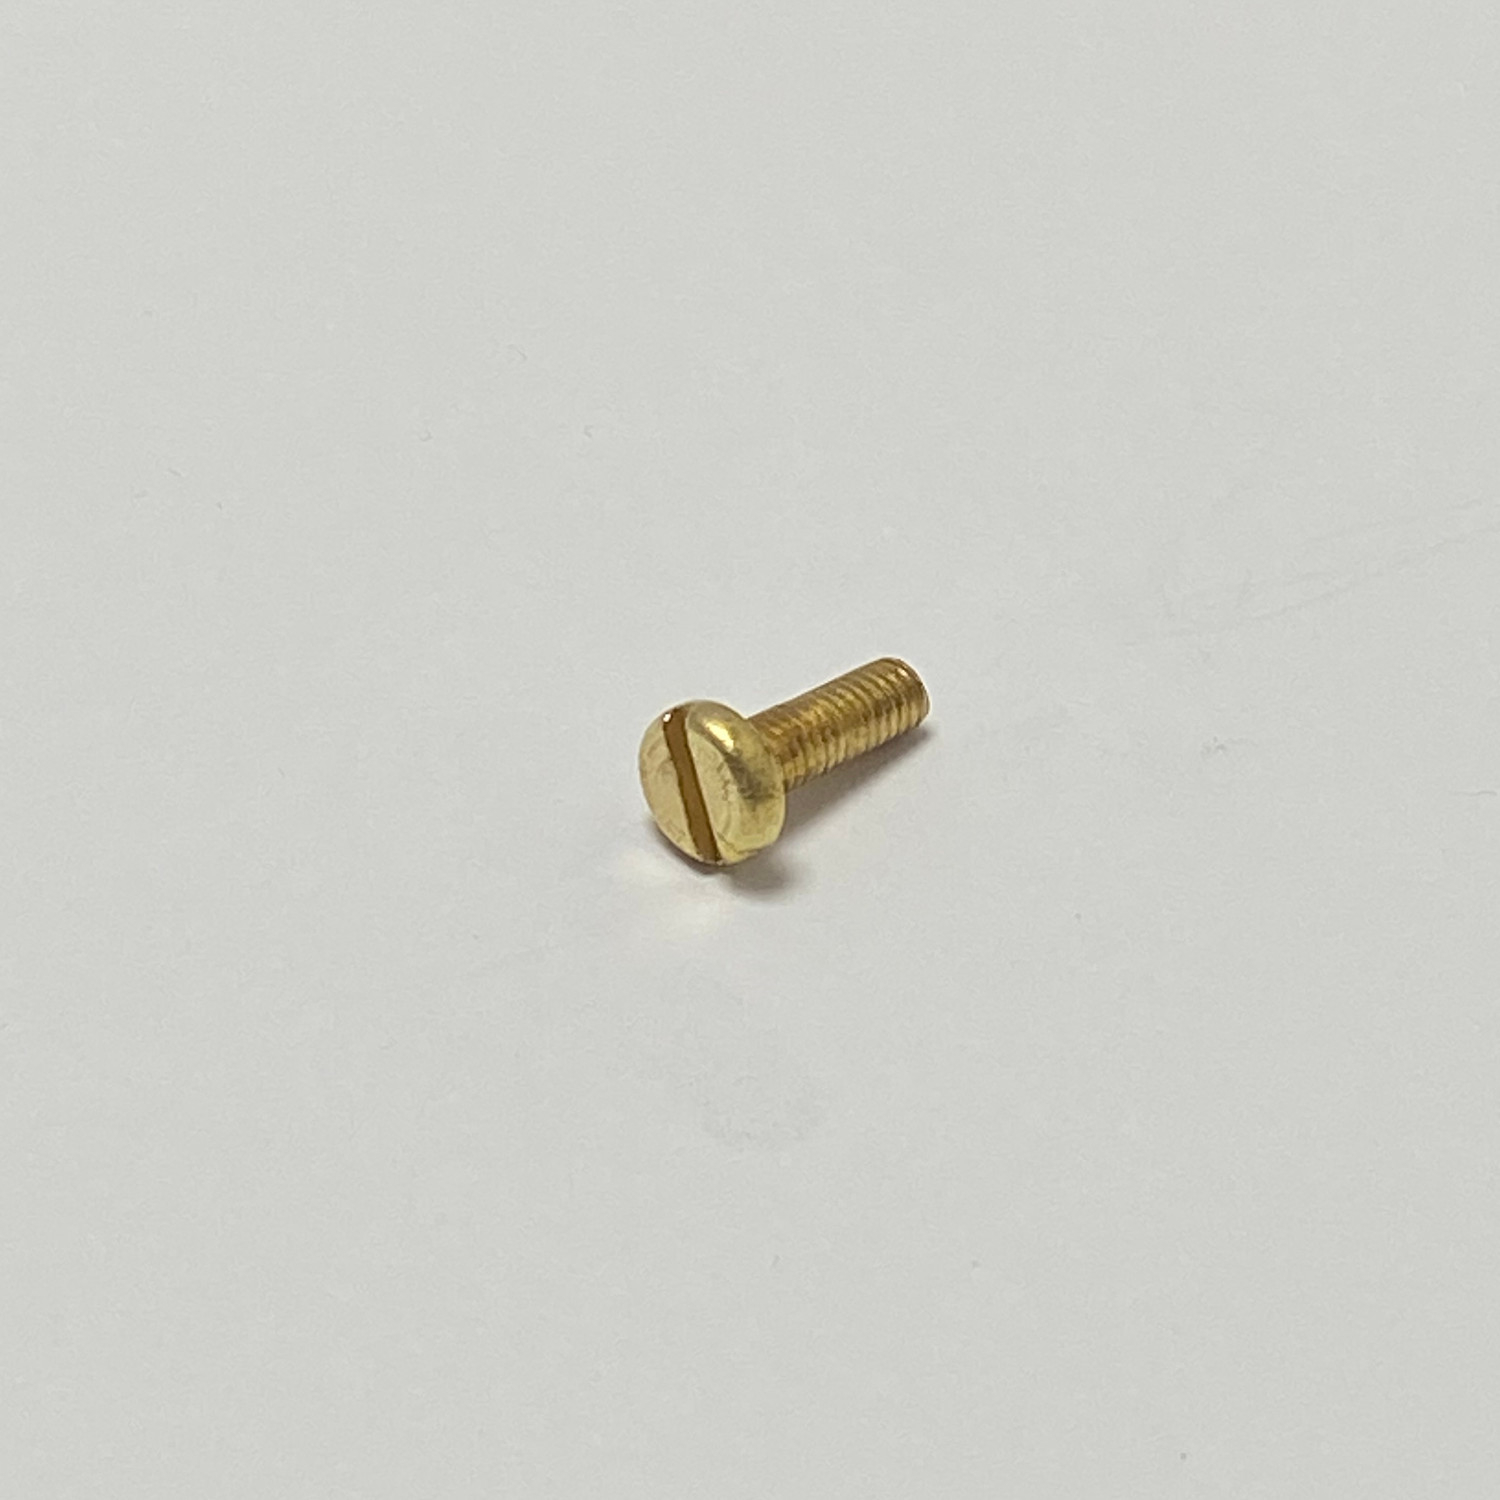 M5 X 30 BRASS SLOTTED CHEESE SCREWS